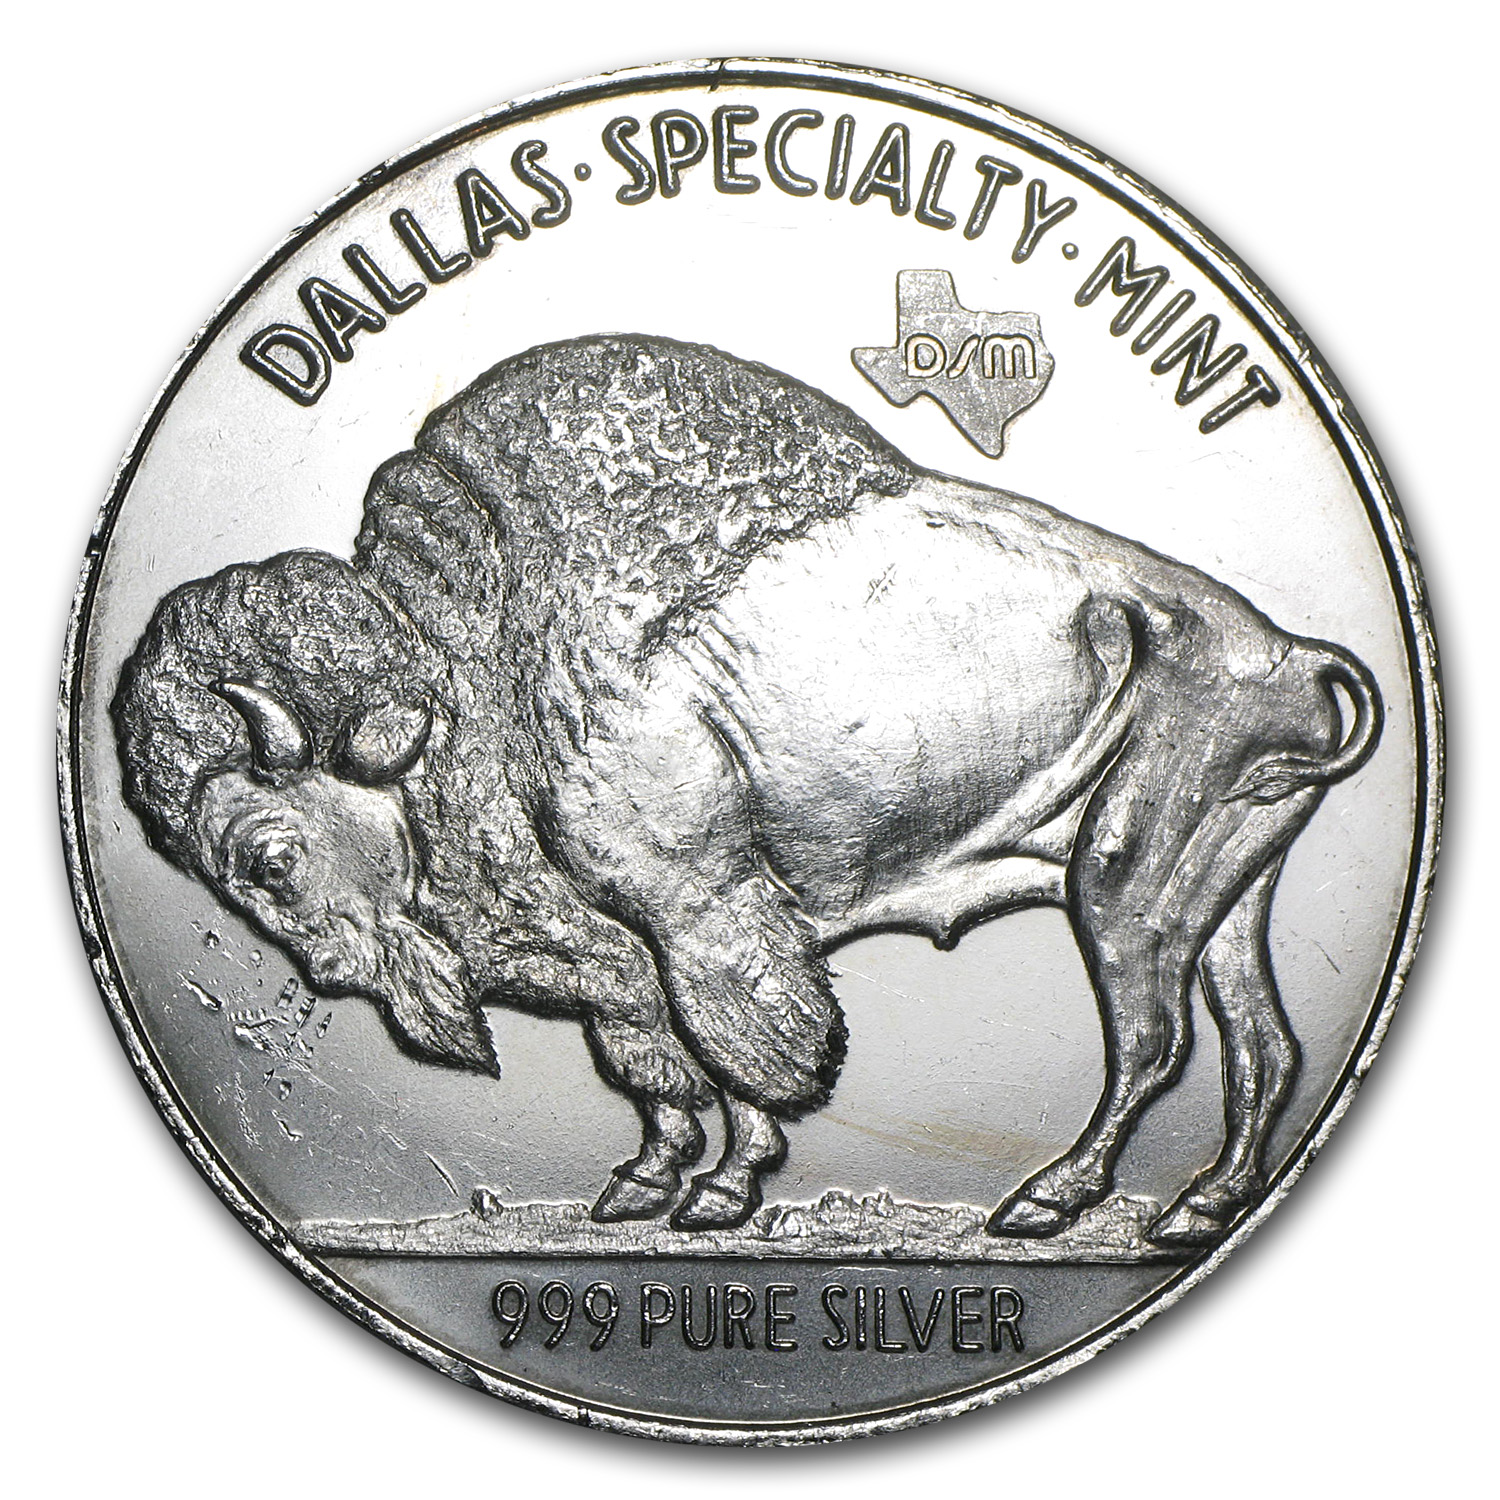 2 oz Silver Round - Buffalo Nickel (Dallas Specialty Mint)